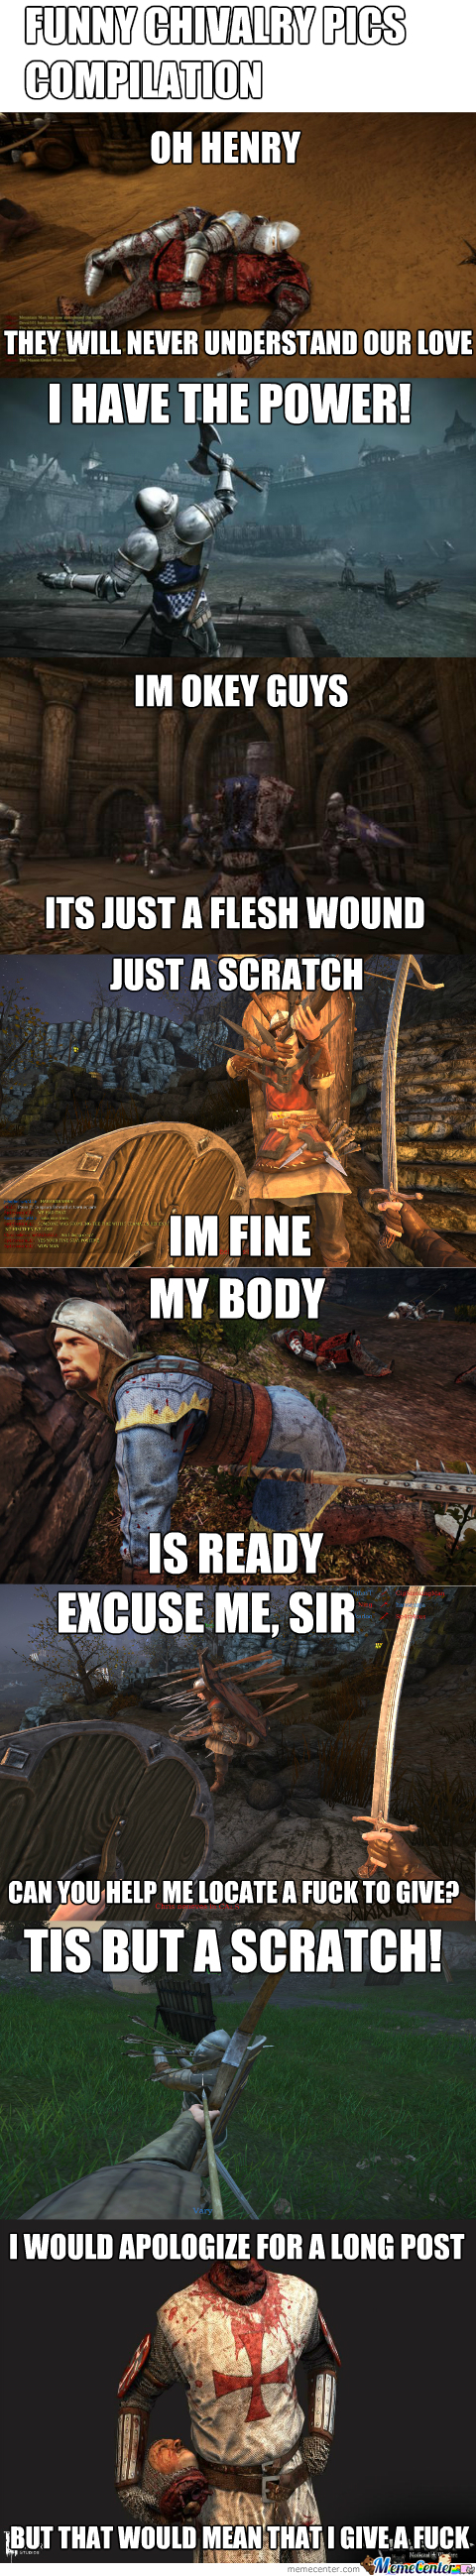 Chivalry Memes Compilation